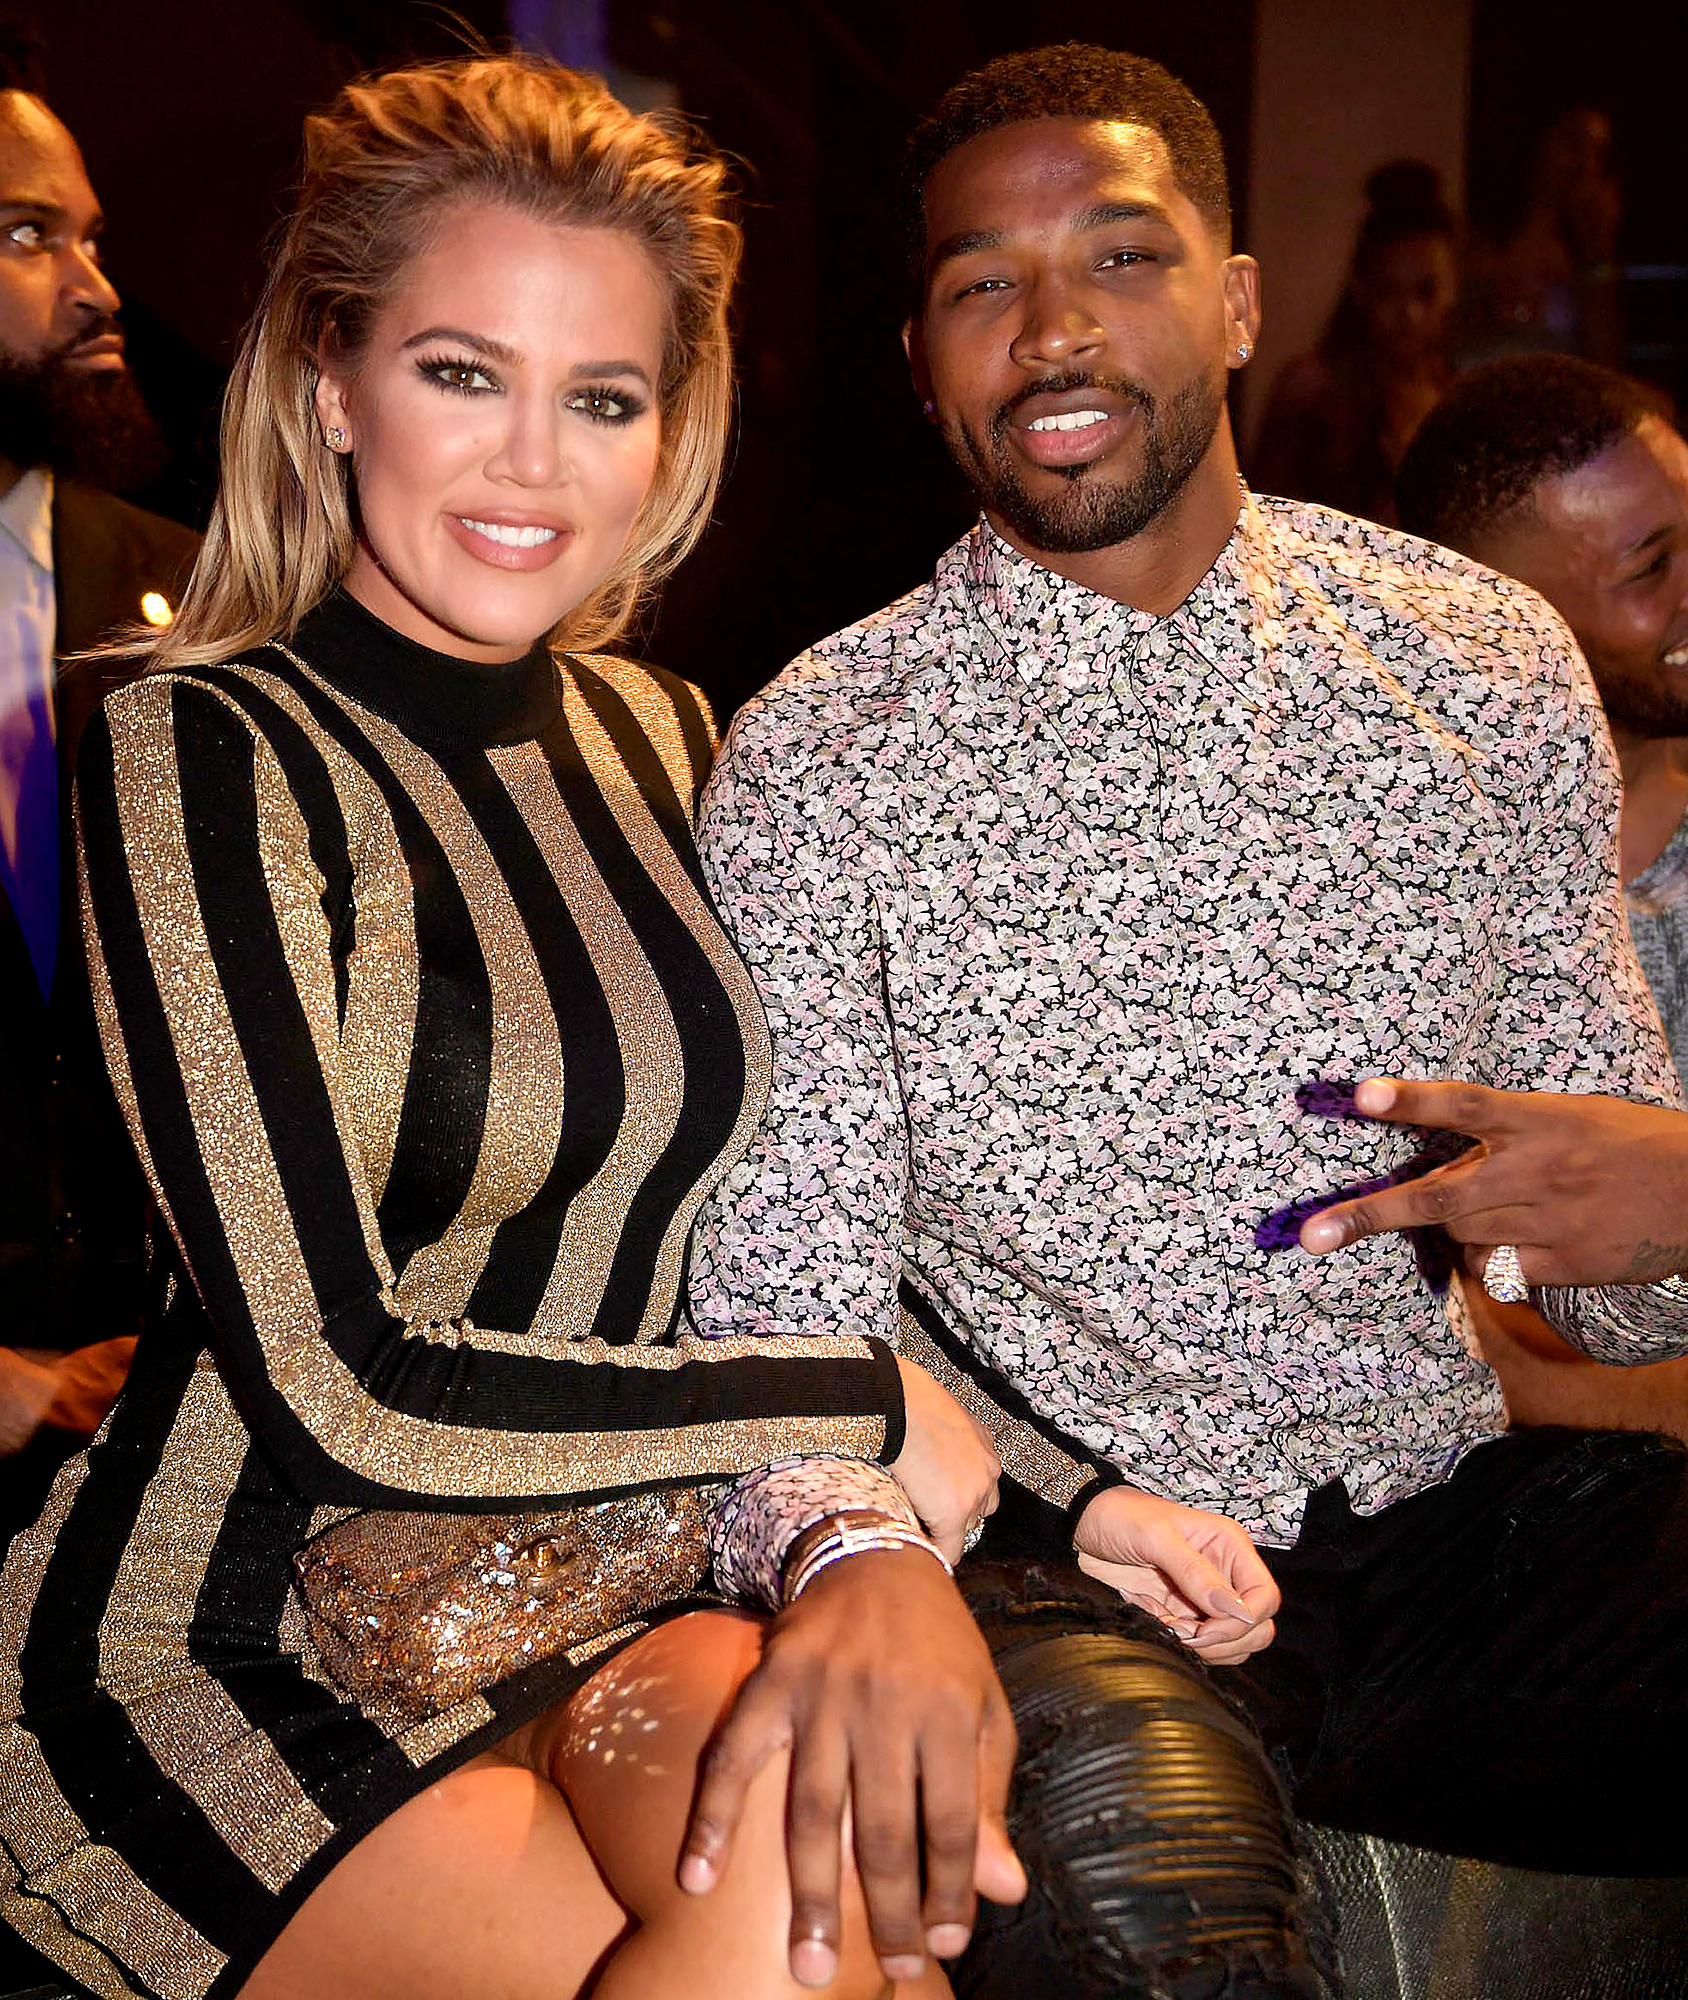 Khloe Kardashian and Tristan Thompson Look Awfully Cozy at Friend Birthday Party 2